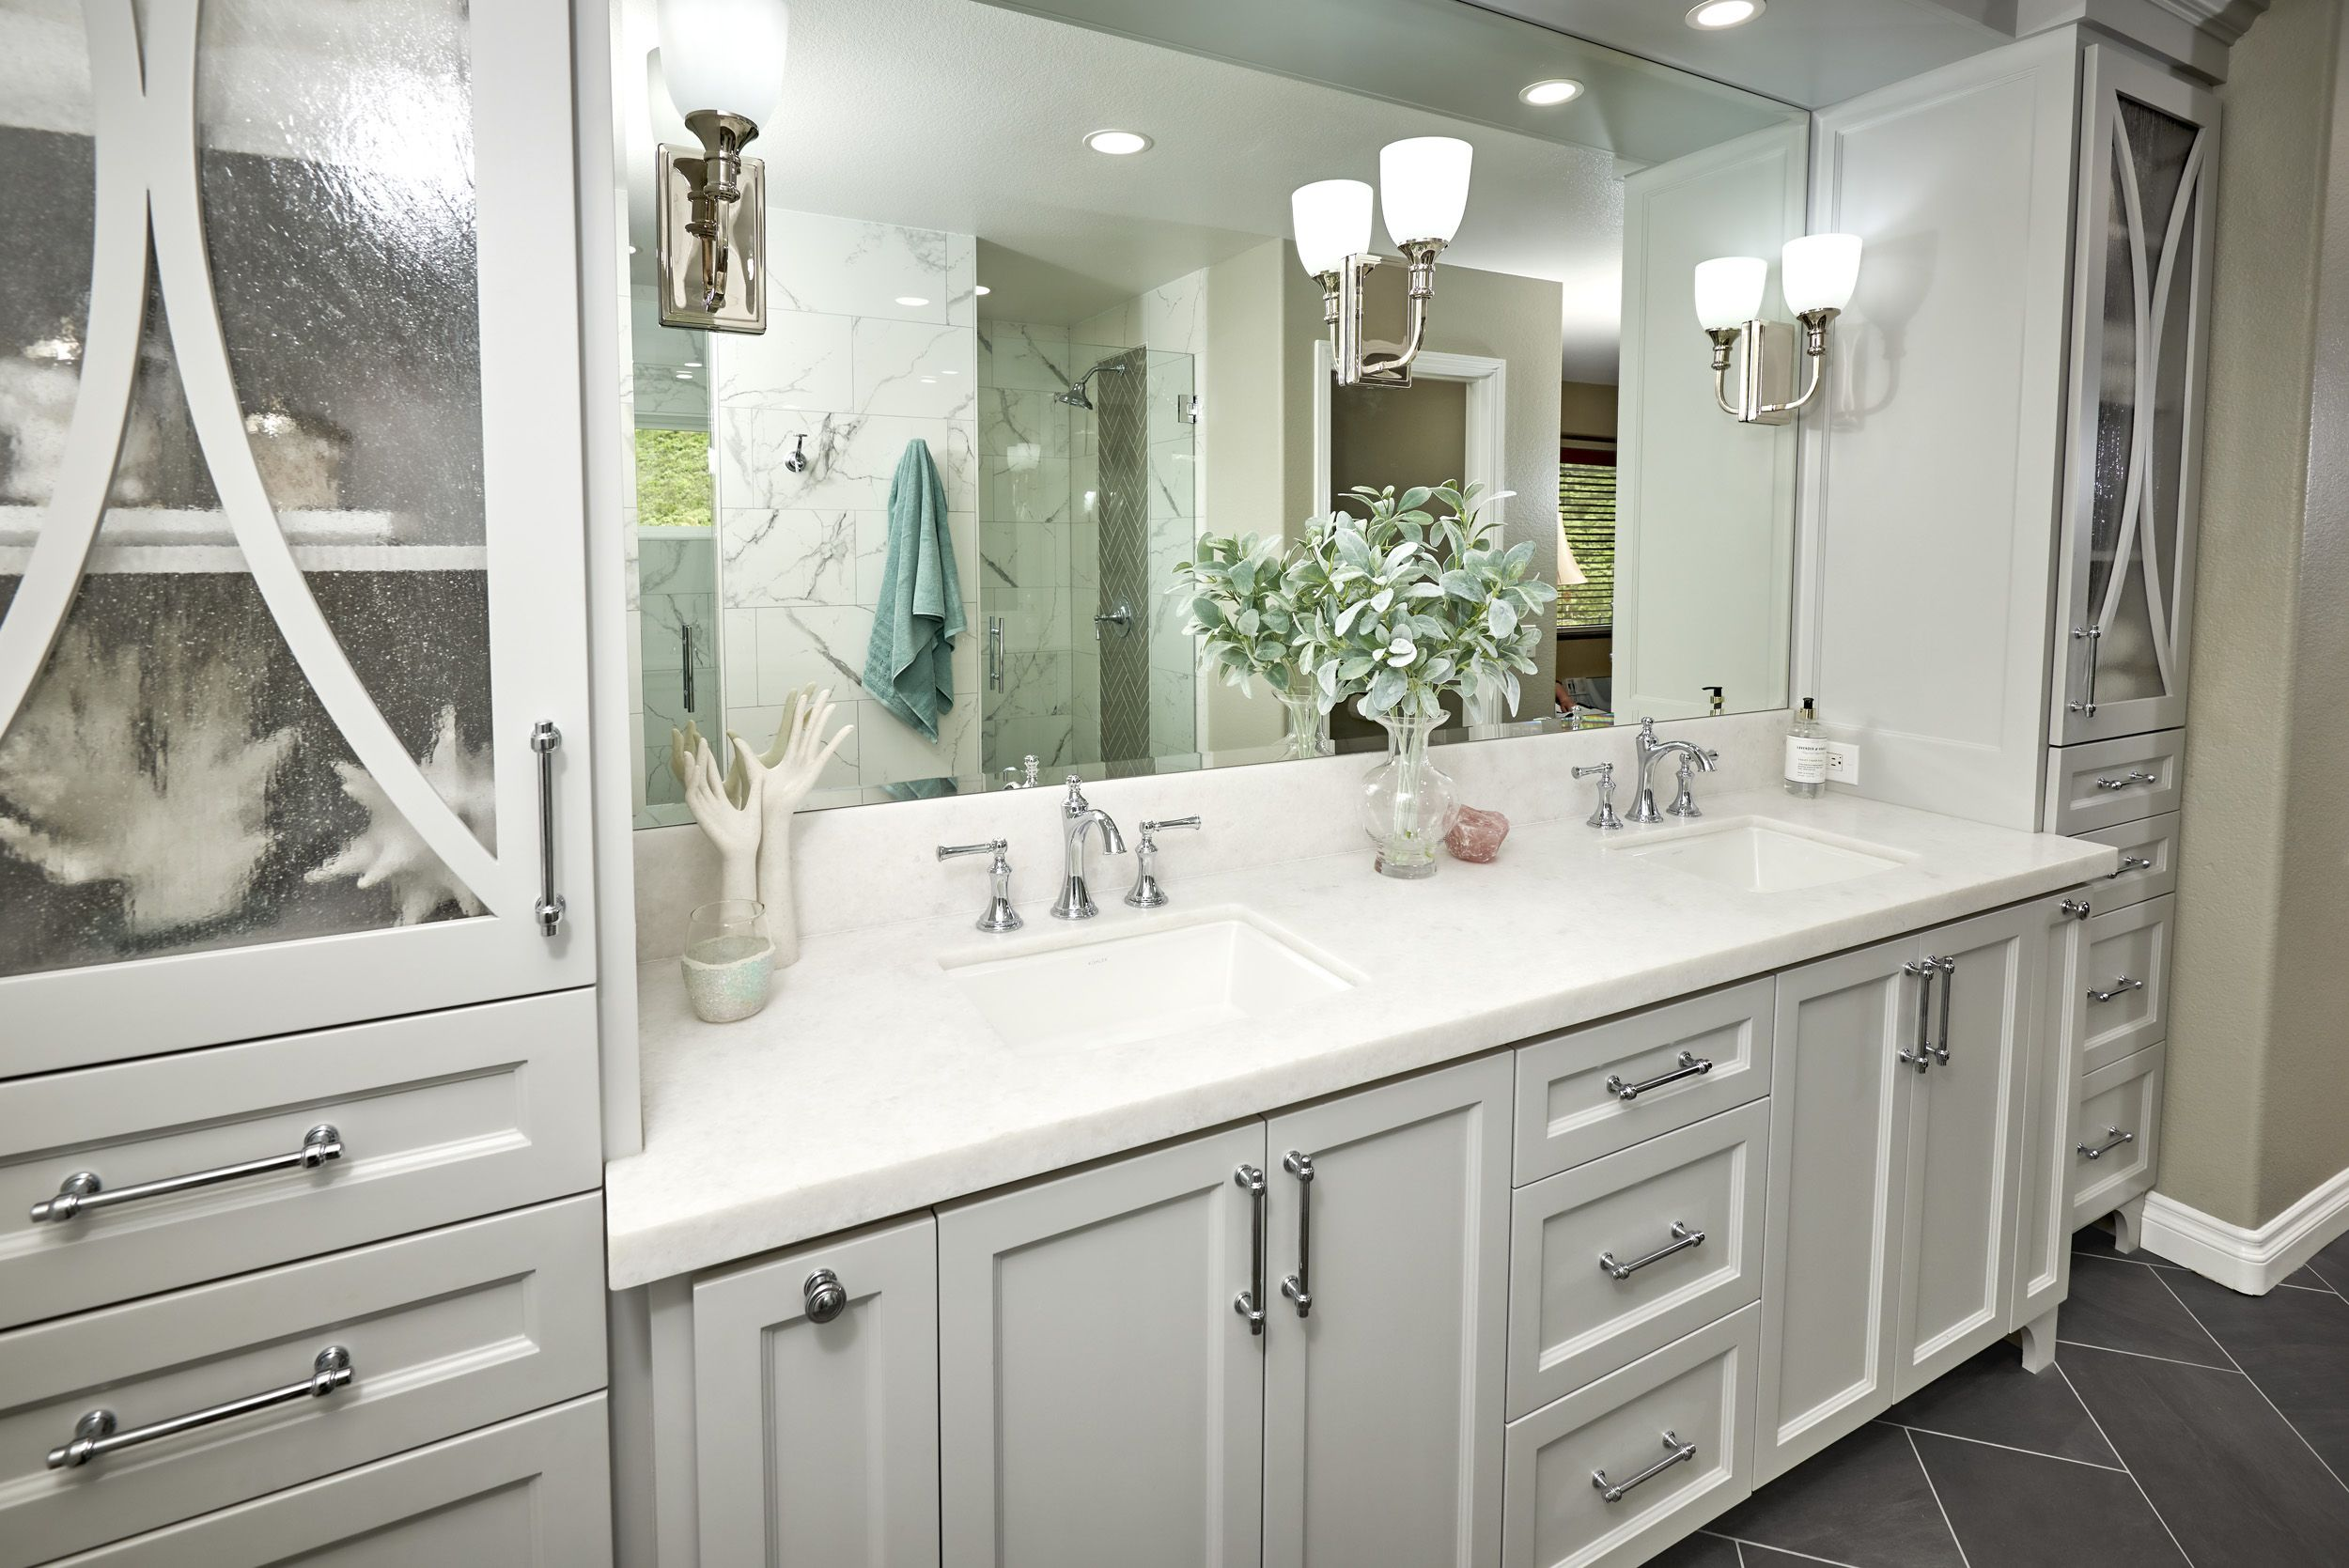 Our Client Loves Her New Spa Like Bathroom Layered With Gray Master Suite Remodel Feature Charcoal Slat Small Bathroom Remodel Small Bathroom Kitchen Design